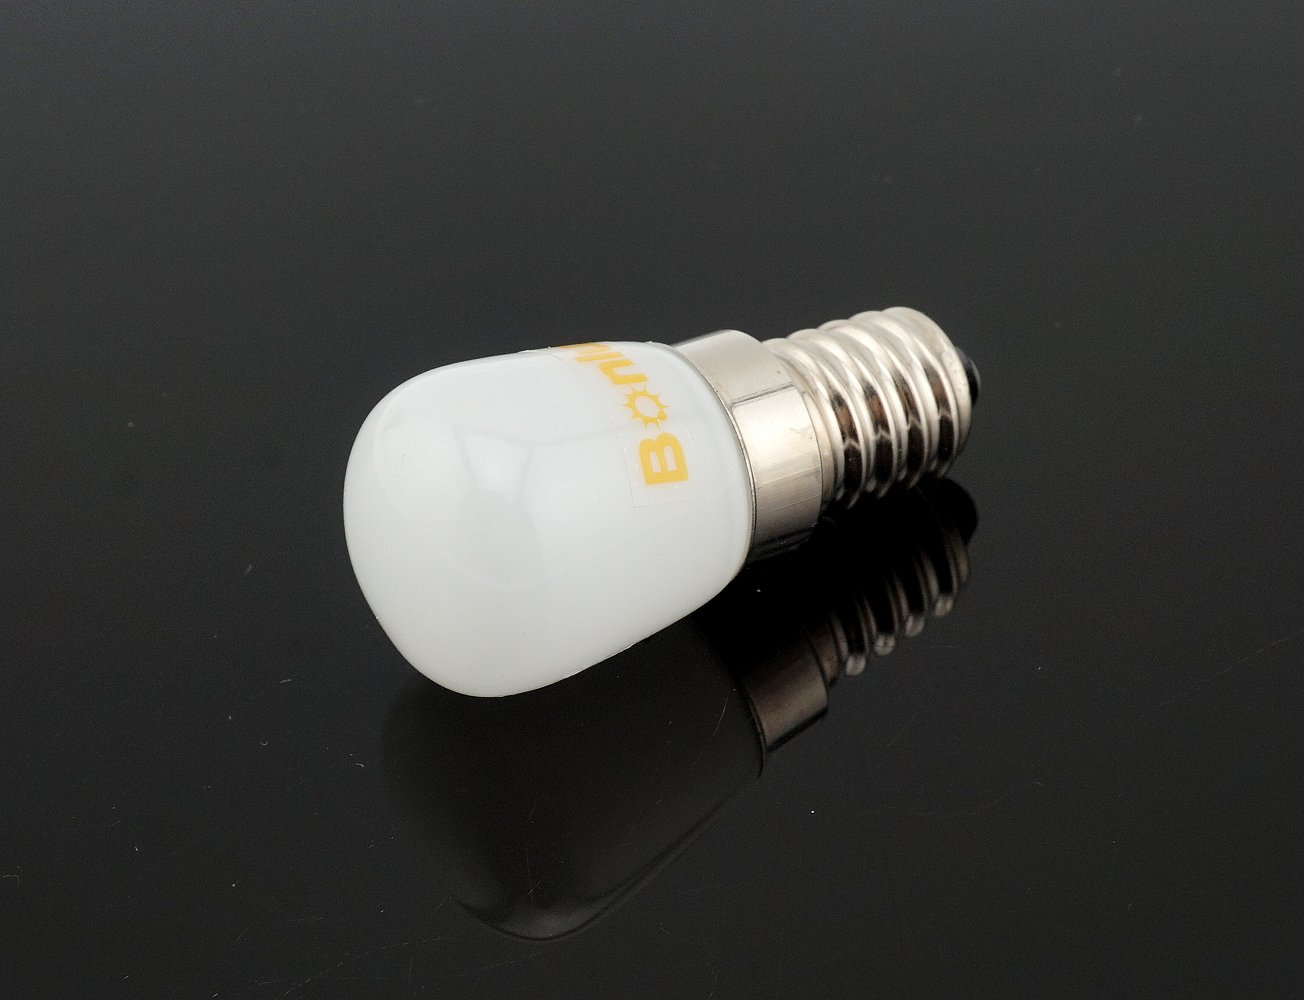 95 Led Fridge Lamp Aliexpress Buy Led Light Bulb E12 2w 3014 Smd 24 High Bright Glass